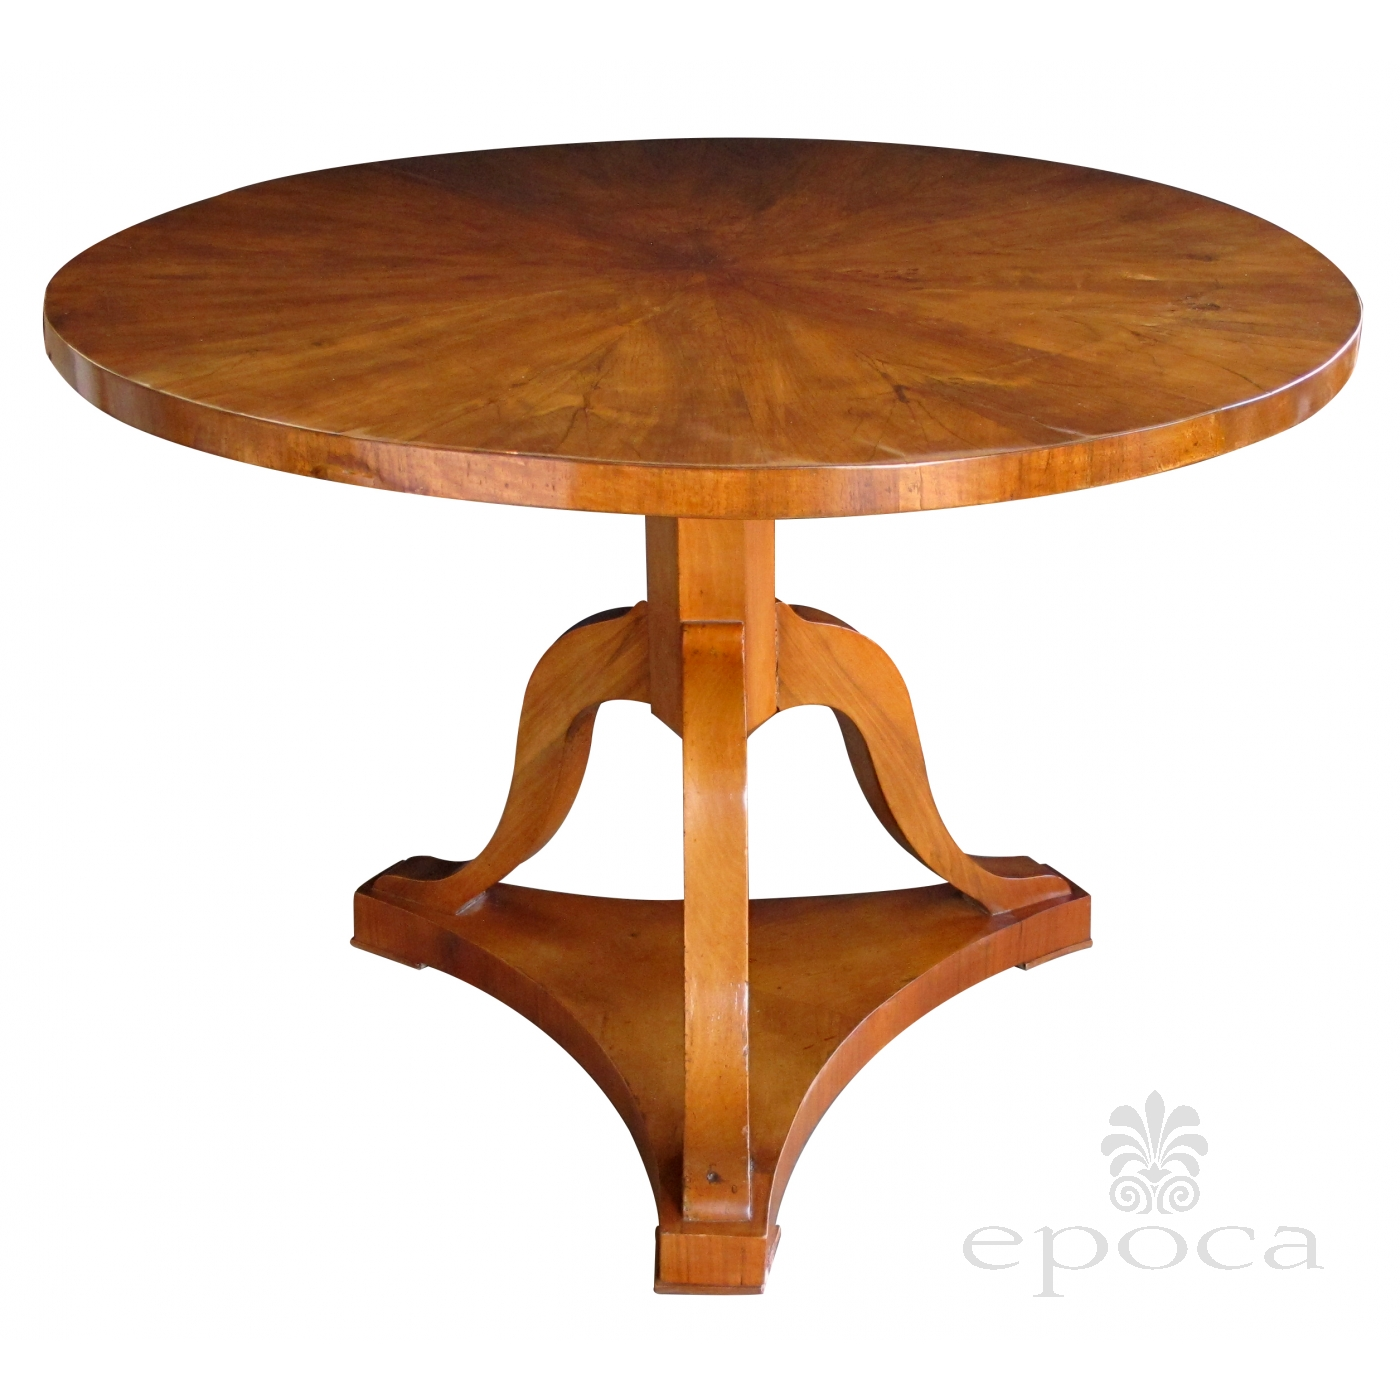 Handsome And Warmly Patinated Austrian Biedermeier Walnut Center Table